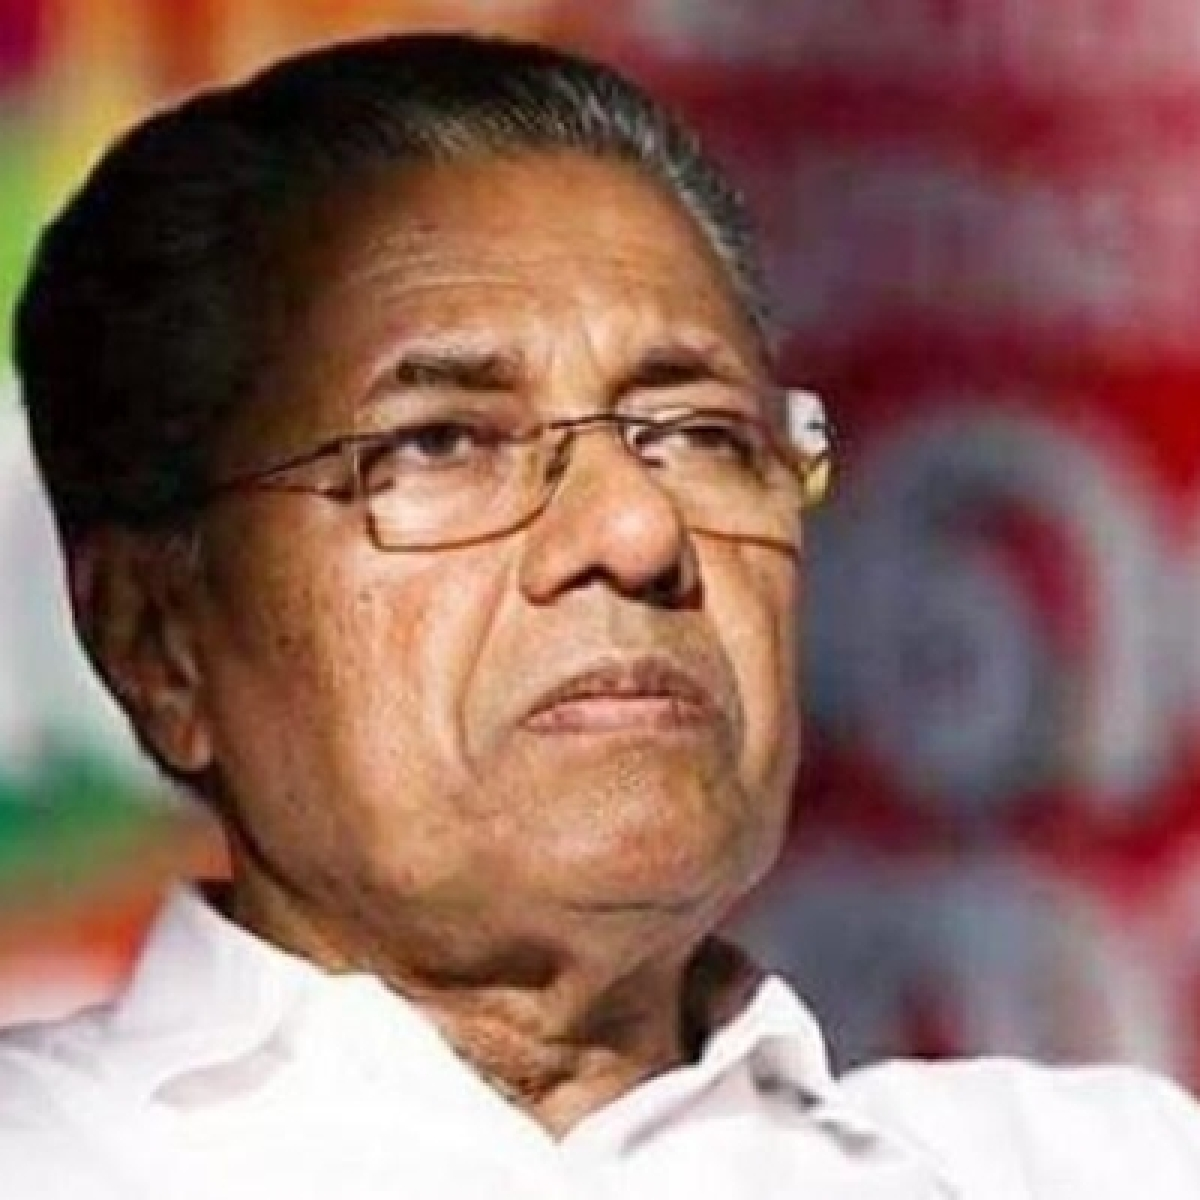 Kerala Gold Smuggling: After Vijayan writes to PM Modi, Centre allows NIA to probe matter; cites national security